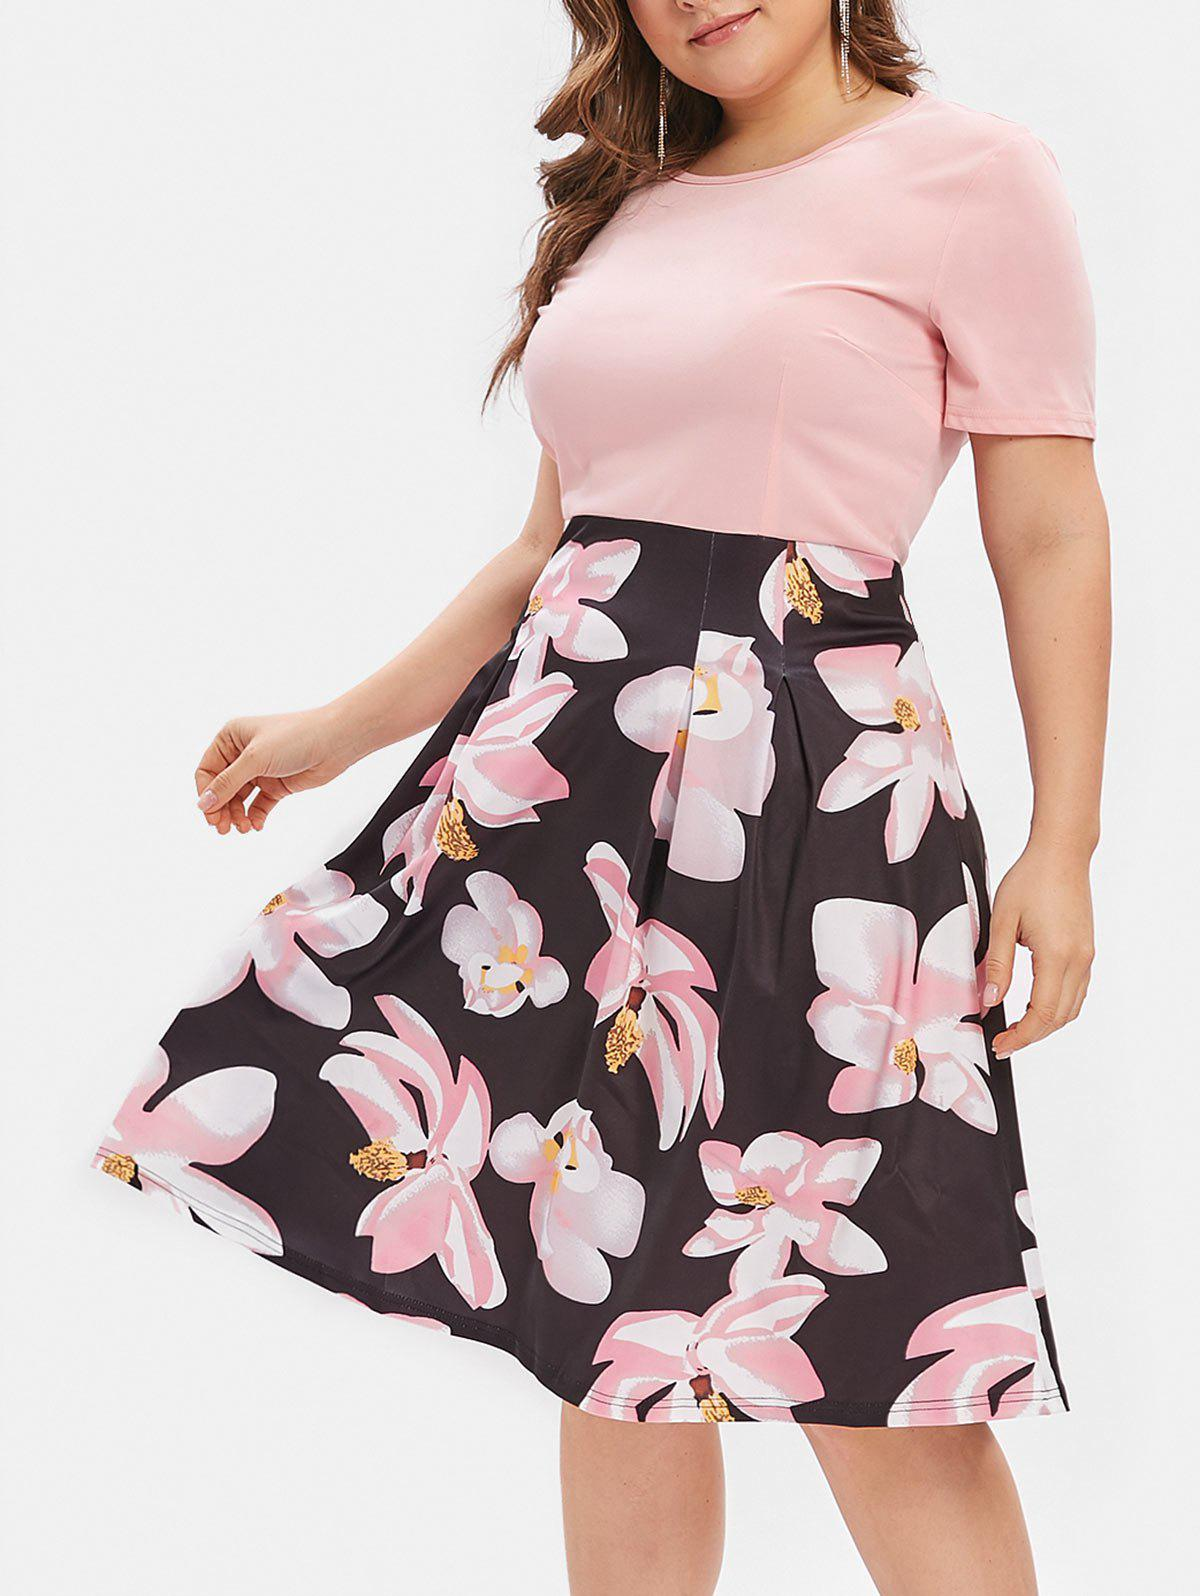 Plus Size Flower Print A Line Dress - LIGHT PINK 2X